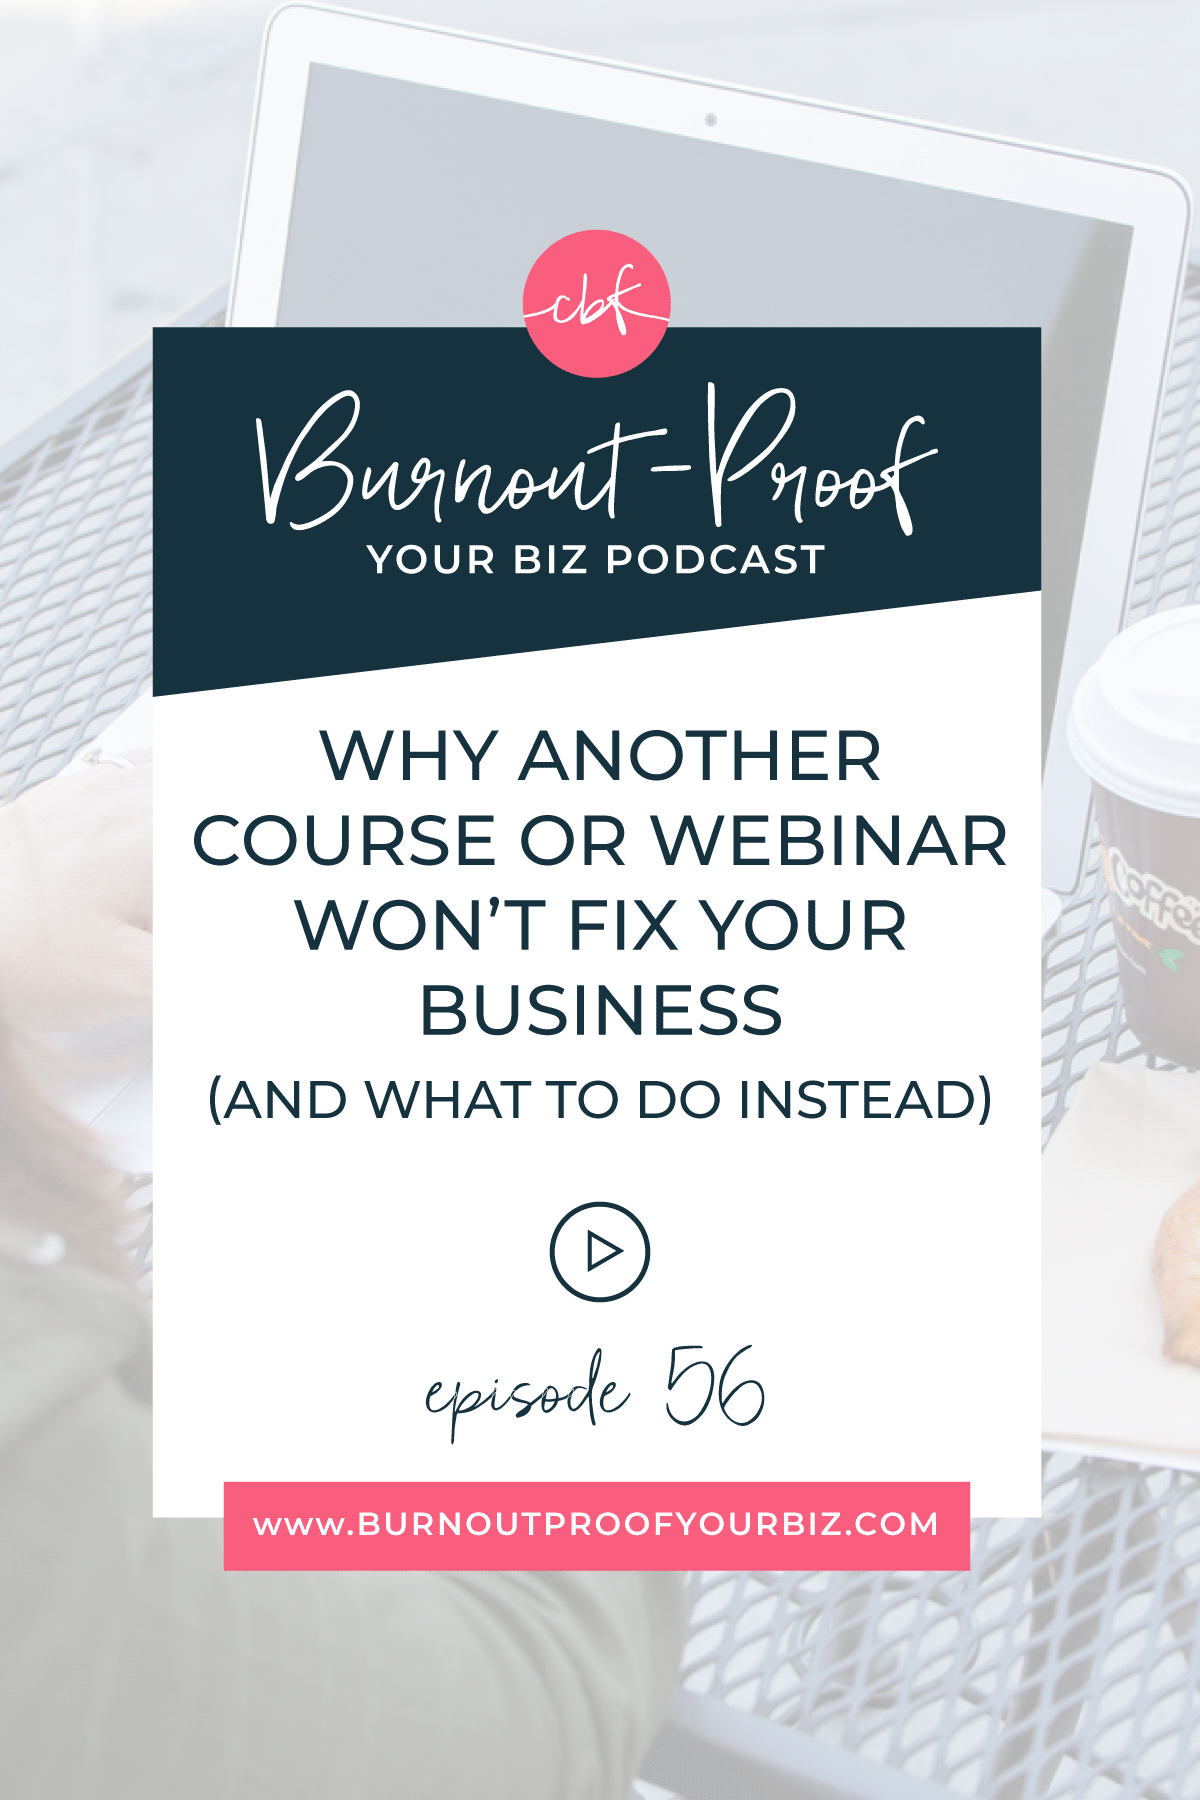 WHY ANOTHER COURSE OR WEBINAR WON'T FIX YOUR BUSINESS (AND WHAT TO DO INSTEAD) on the Burnout-Proof Your Biz Podcast with Chelsea B Foster | Episode 056 - The Most Important Part of Running Your Own Business | Learn how to run your biz and live your dream life on your own terms without the fear of burnout.  | Business Coach | Workflow & Productivity Specialist | Implementation vs. Hustle | Hustle Mode | How to get out of Hustle Mode | Why Another Course Won't Help | Courses Aren't Helping - Now What | Hold Yourself Accountable | Learn then Take Action | Creative Entrepreneur | Creative Influencer | Productivity | Dream life | Freedom Lifestyle | Having a business that supports your dream life |